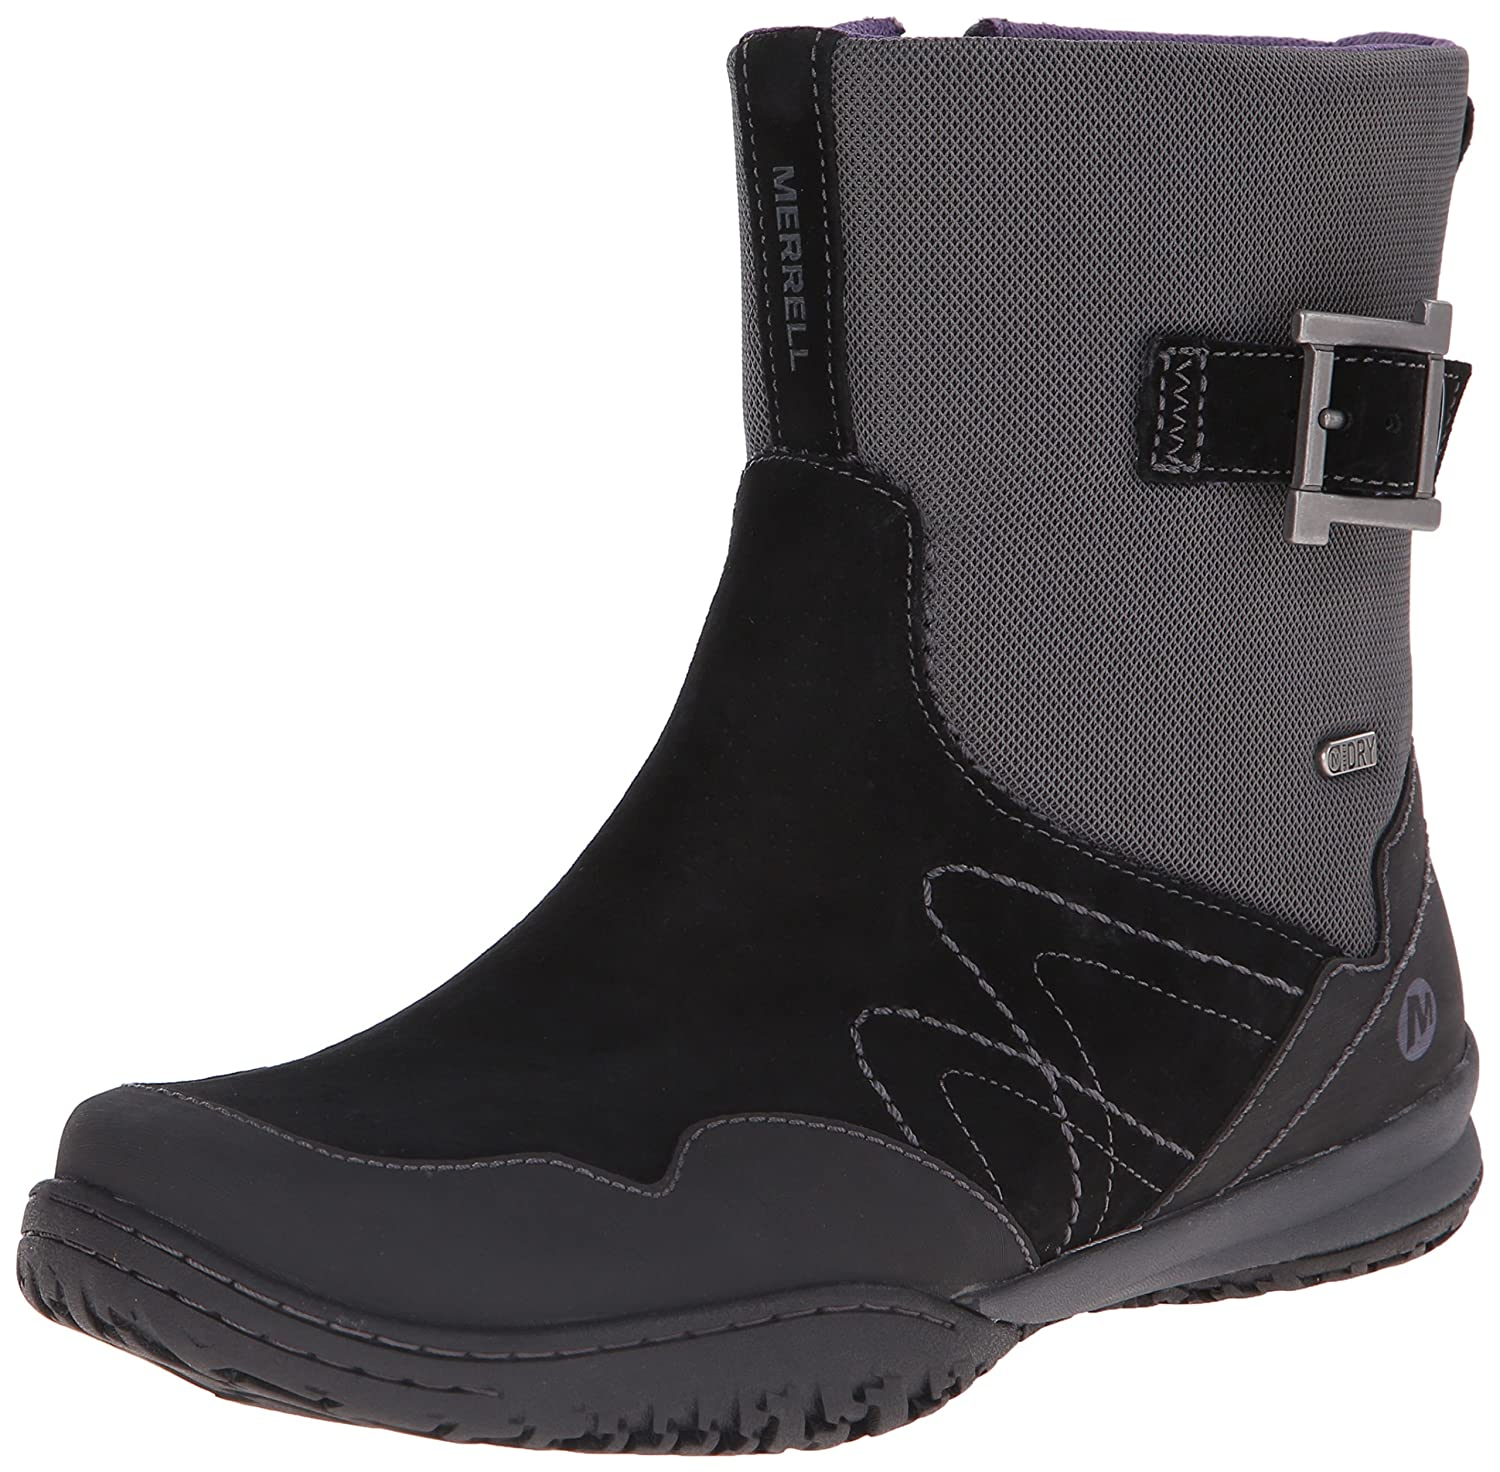 Merrell Women's Albany Sky Waterproof Mid Boot B00RDPVKVS 10 B(M) US|Black